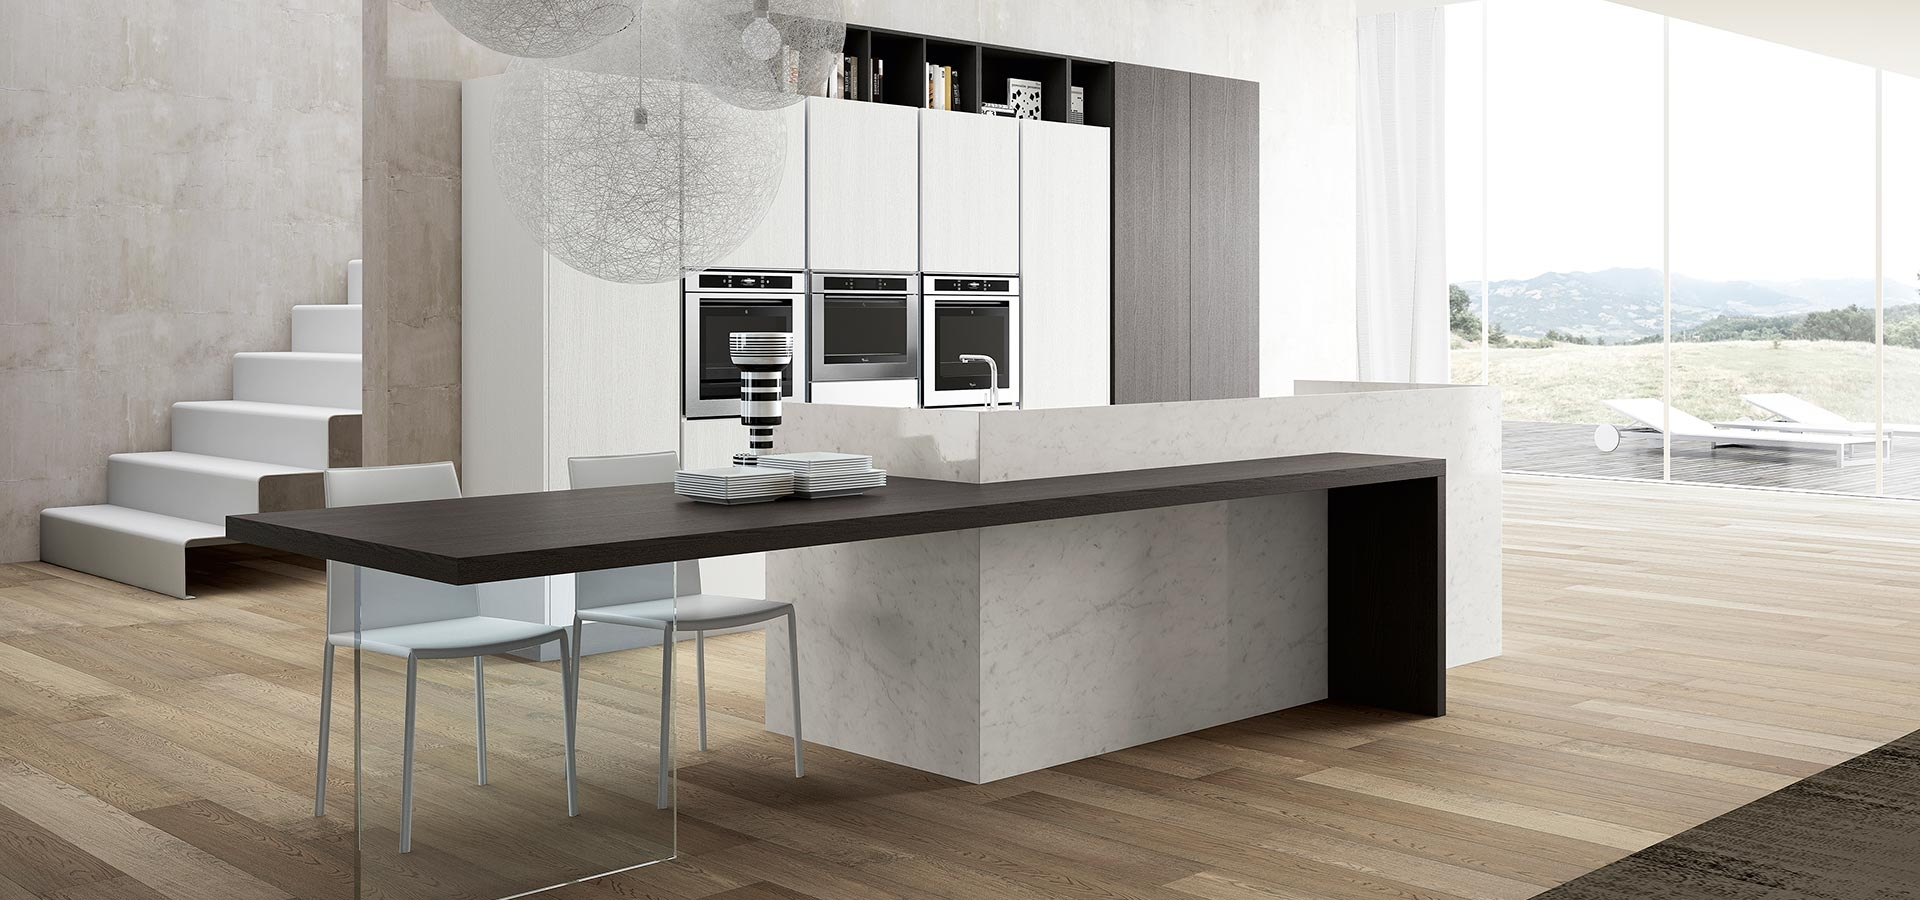 kitchen design abingdon linea amp plana handleless kitchen design abingdon 769